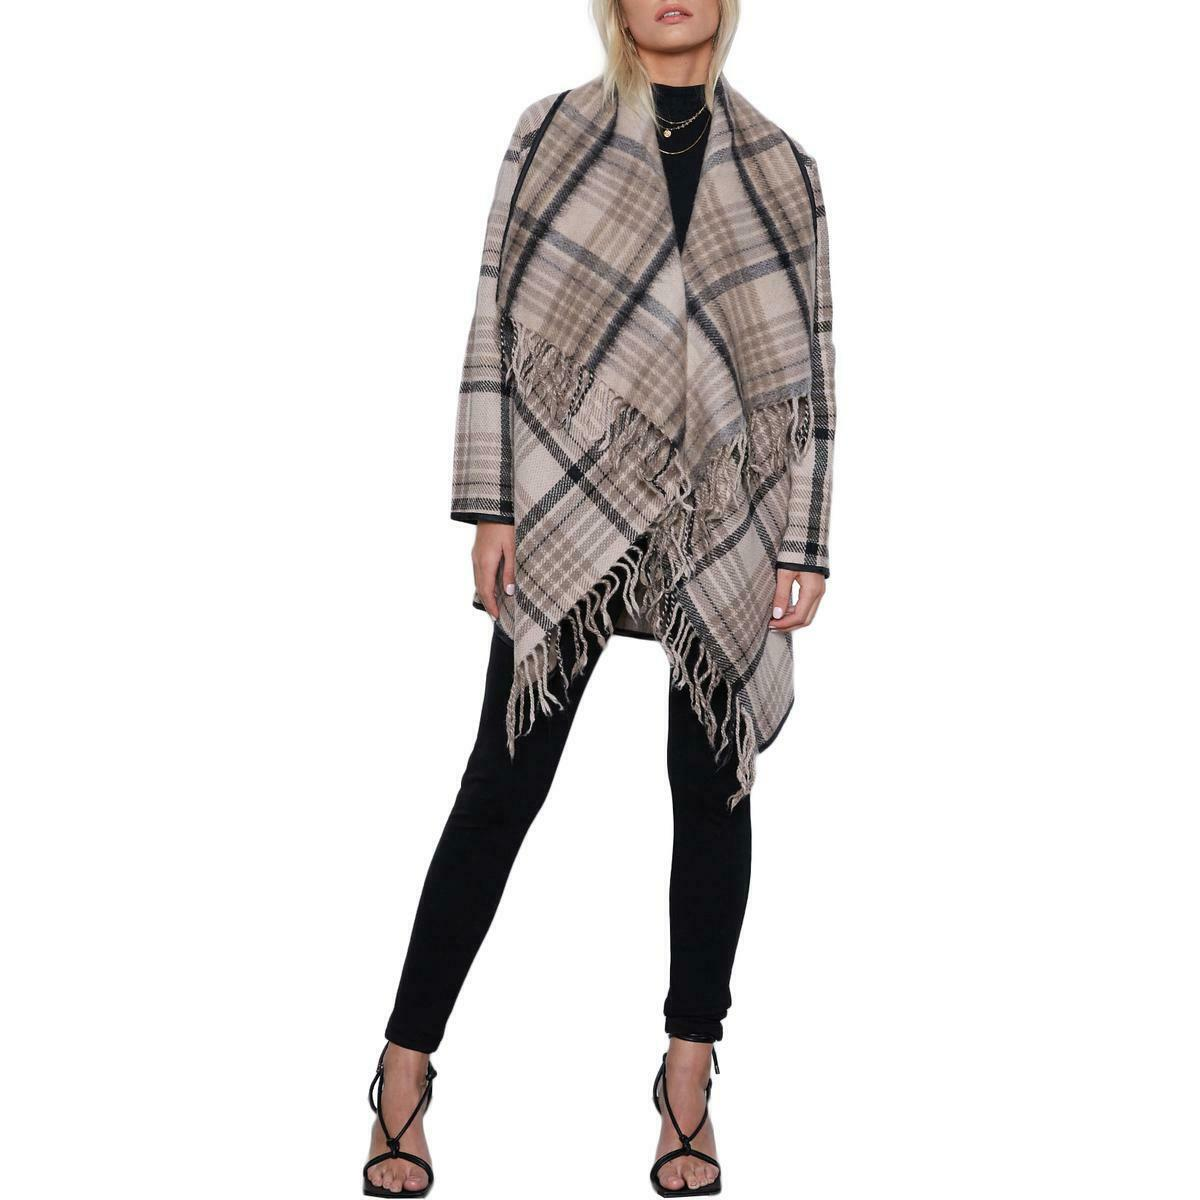 Tart Collections Sage Women's Plaid Asymmetric Fringed Wool Coat